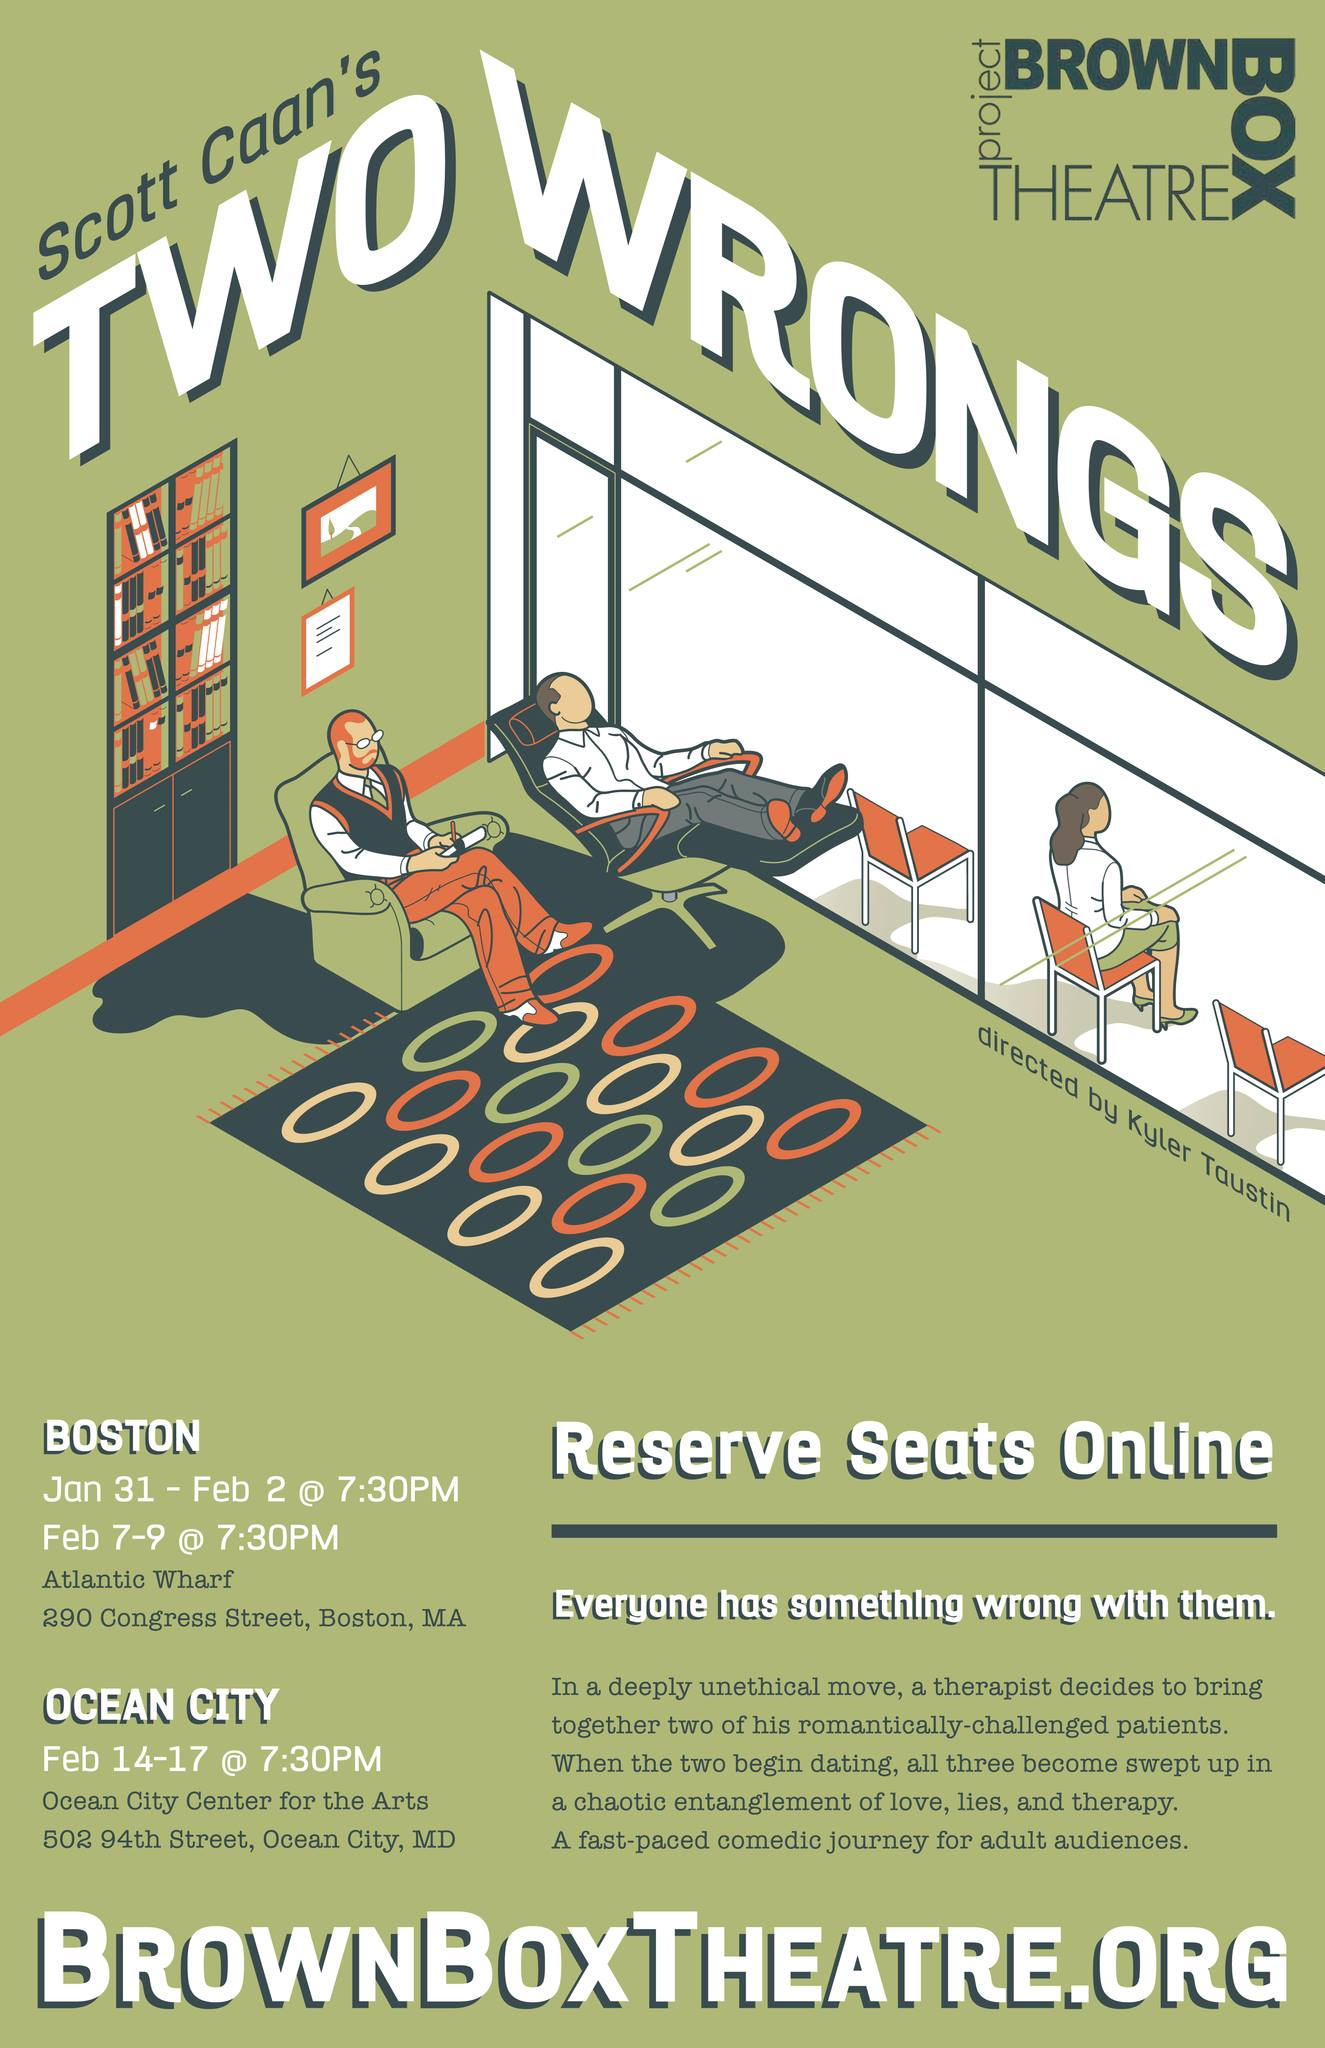 green Poster for play two wrongs